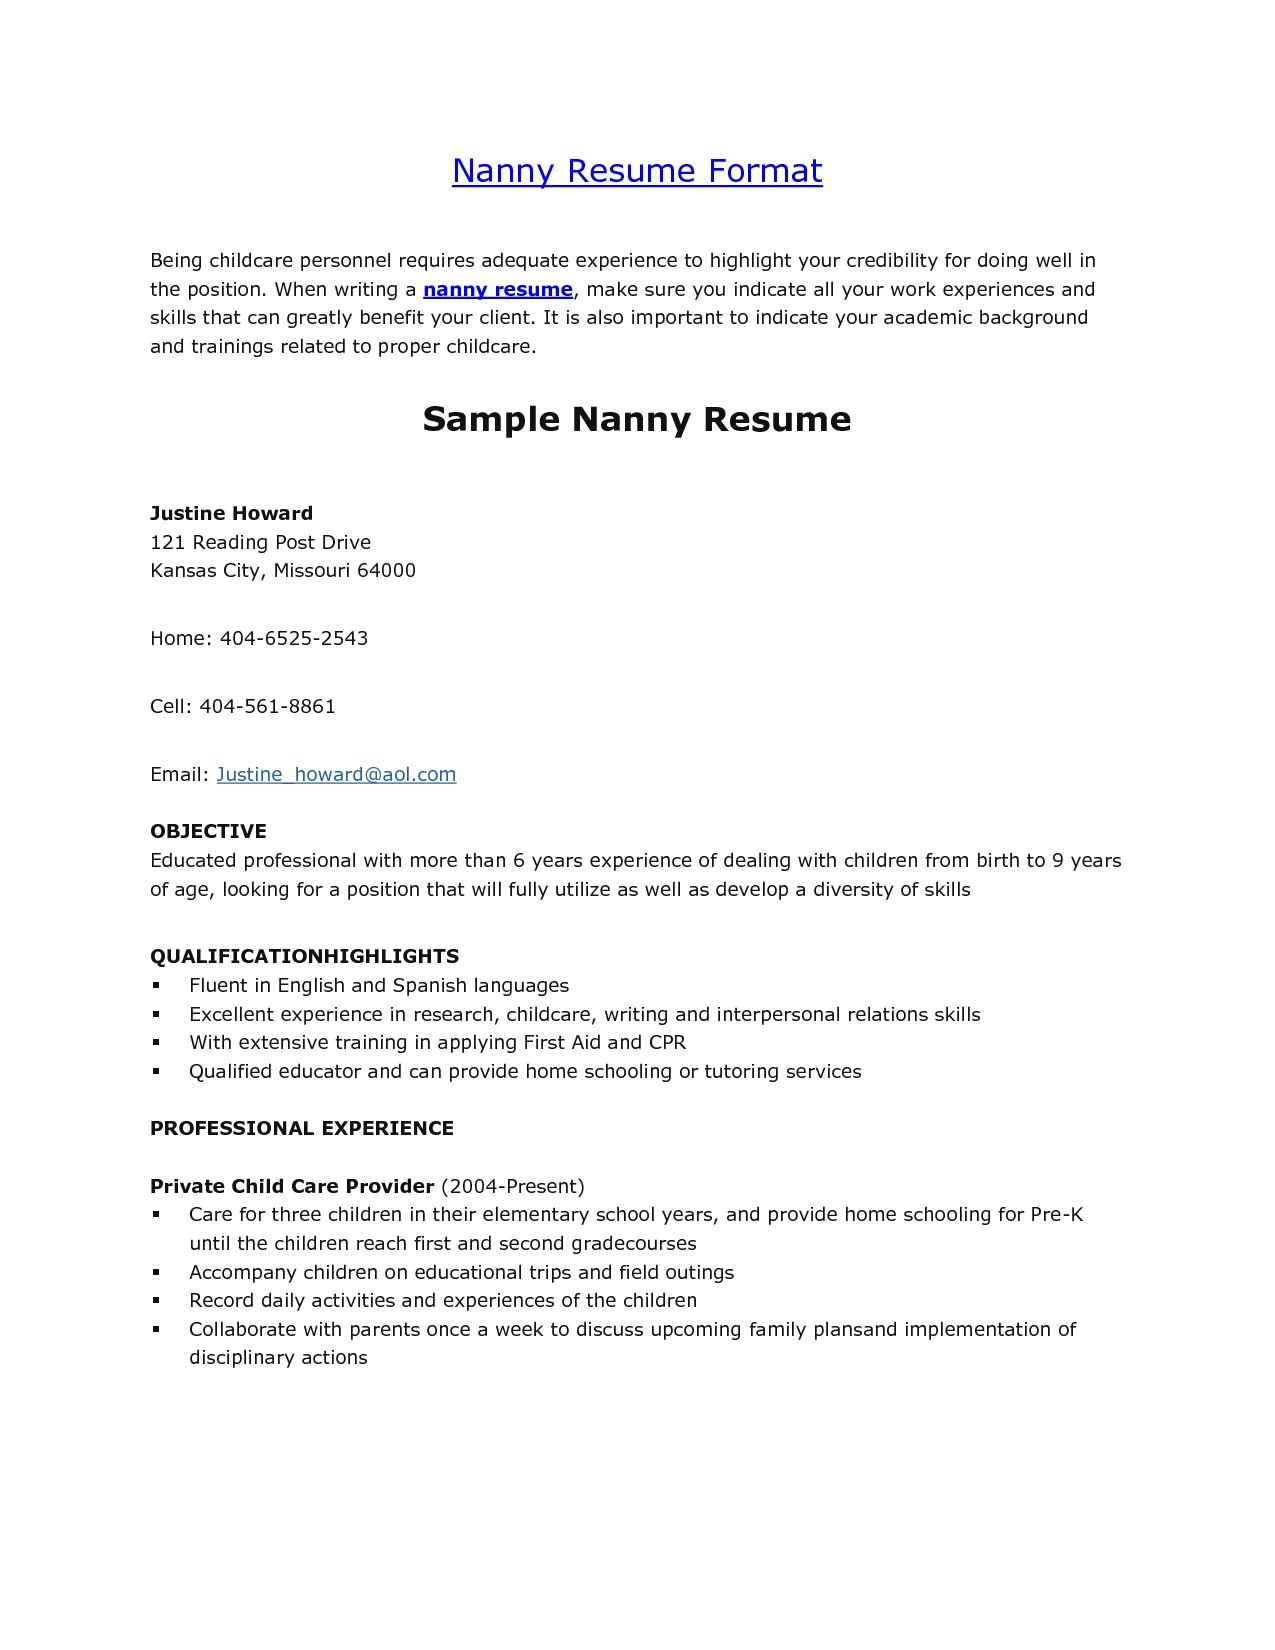 Nanny Job Resume Duties Baby Babysitter Sample Template Letter